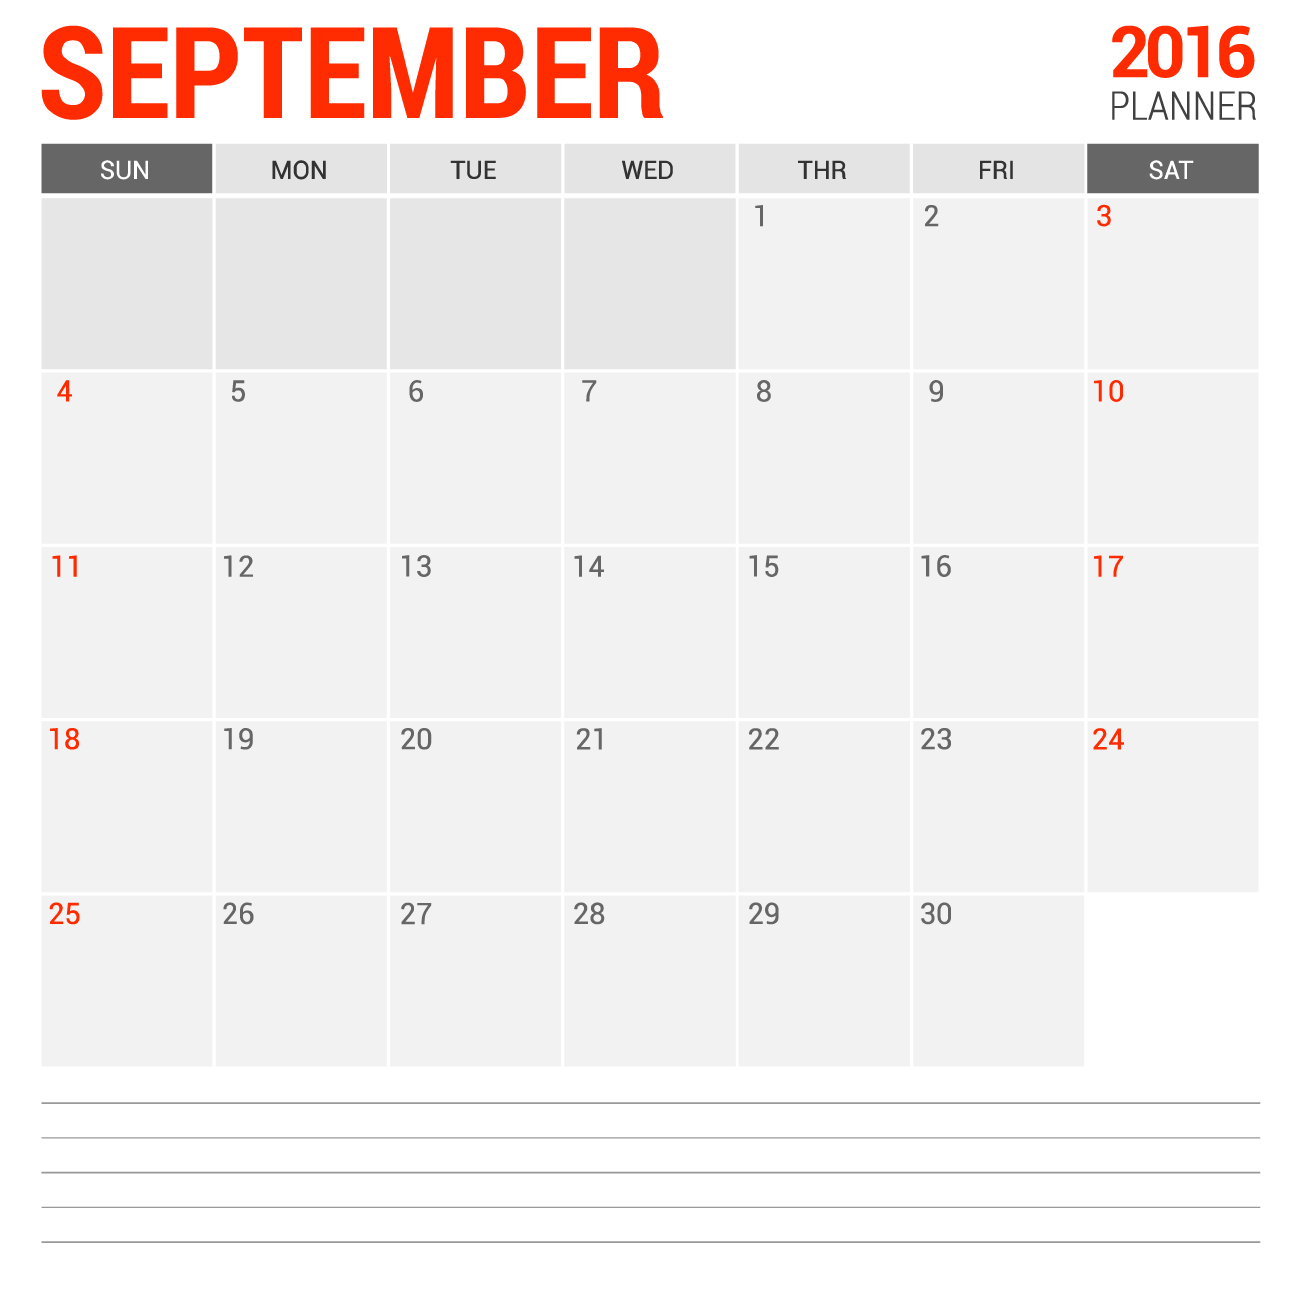 blank calendar September 2016 blank calendar pages blank calendar templates a blank calendar for September 2016 blank calendar by days ez printable calendar the printable calendar blank calendar on one page blank calendar 30 days blank calendar 31 days blank calendar 4 months per page blank 4 month calendar 2016